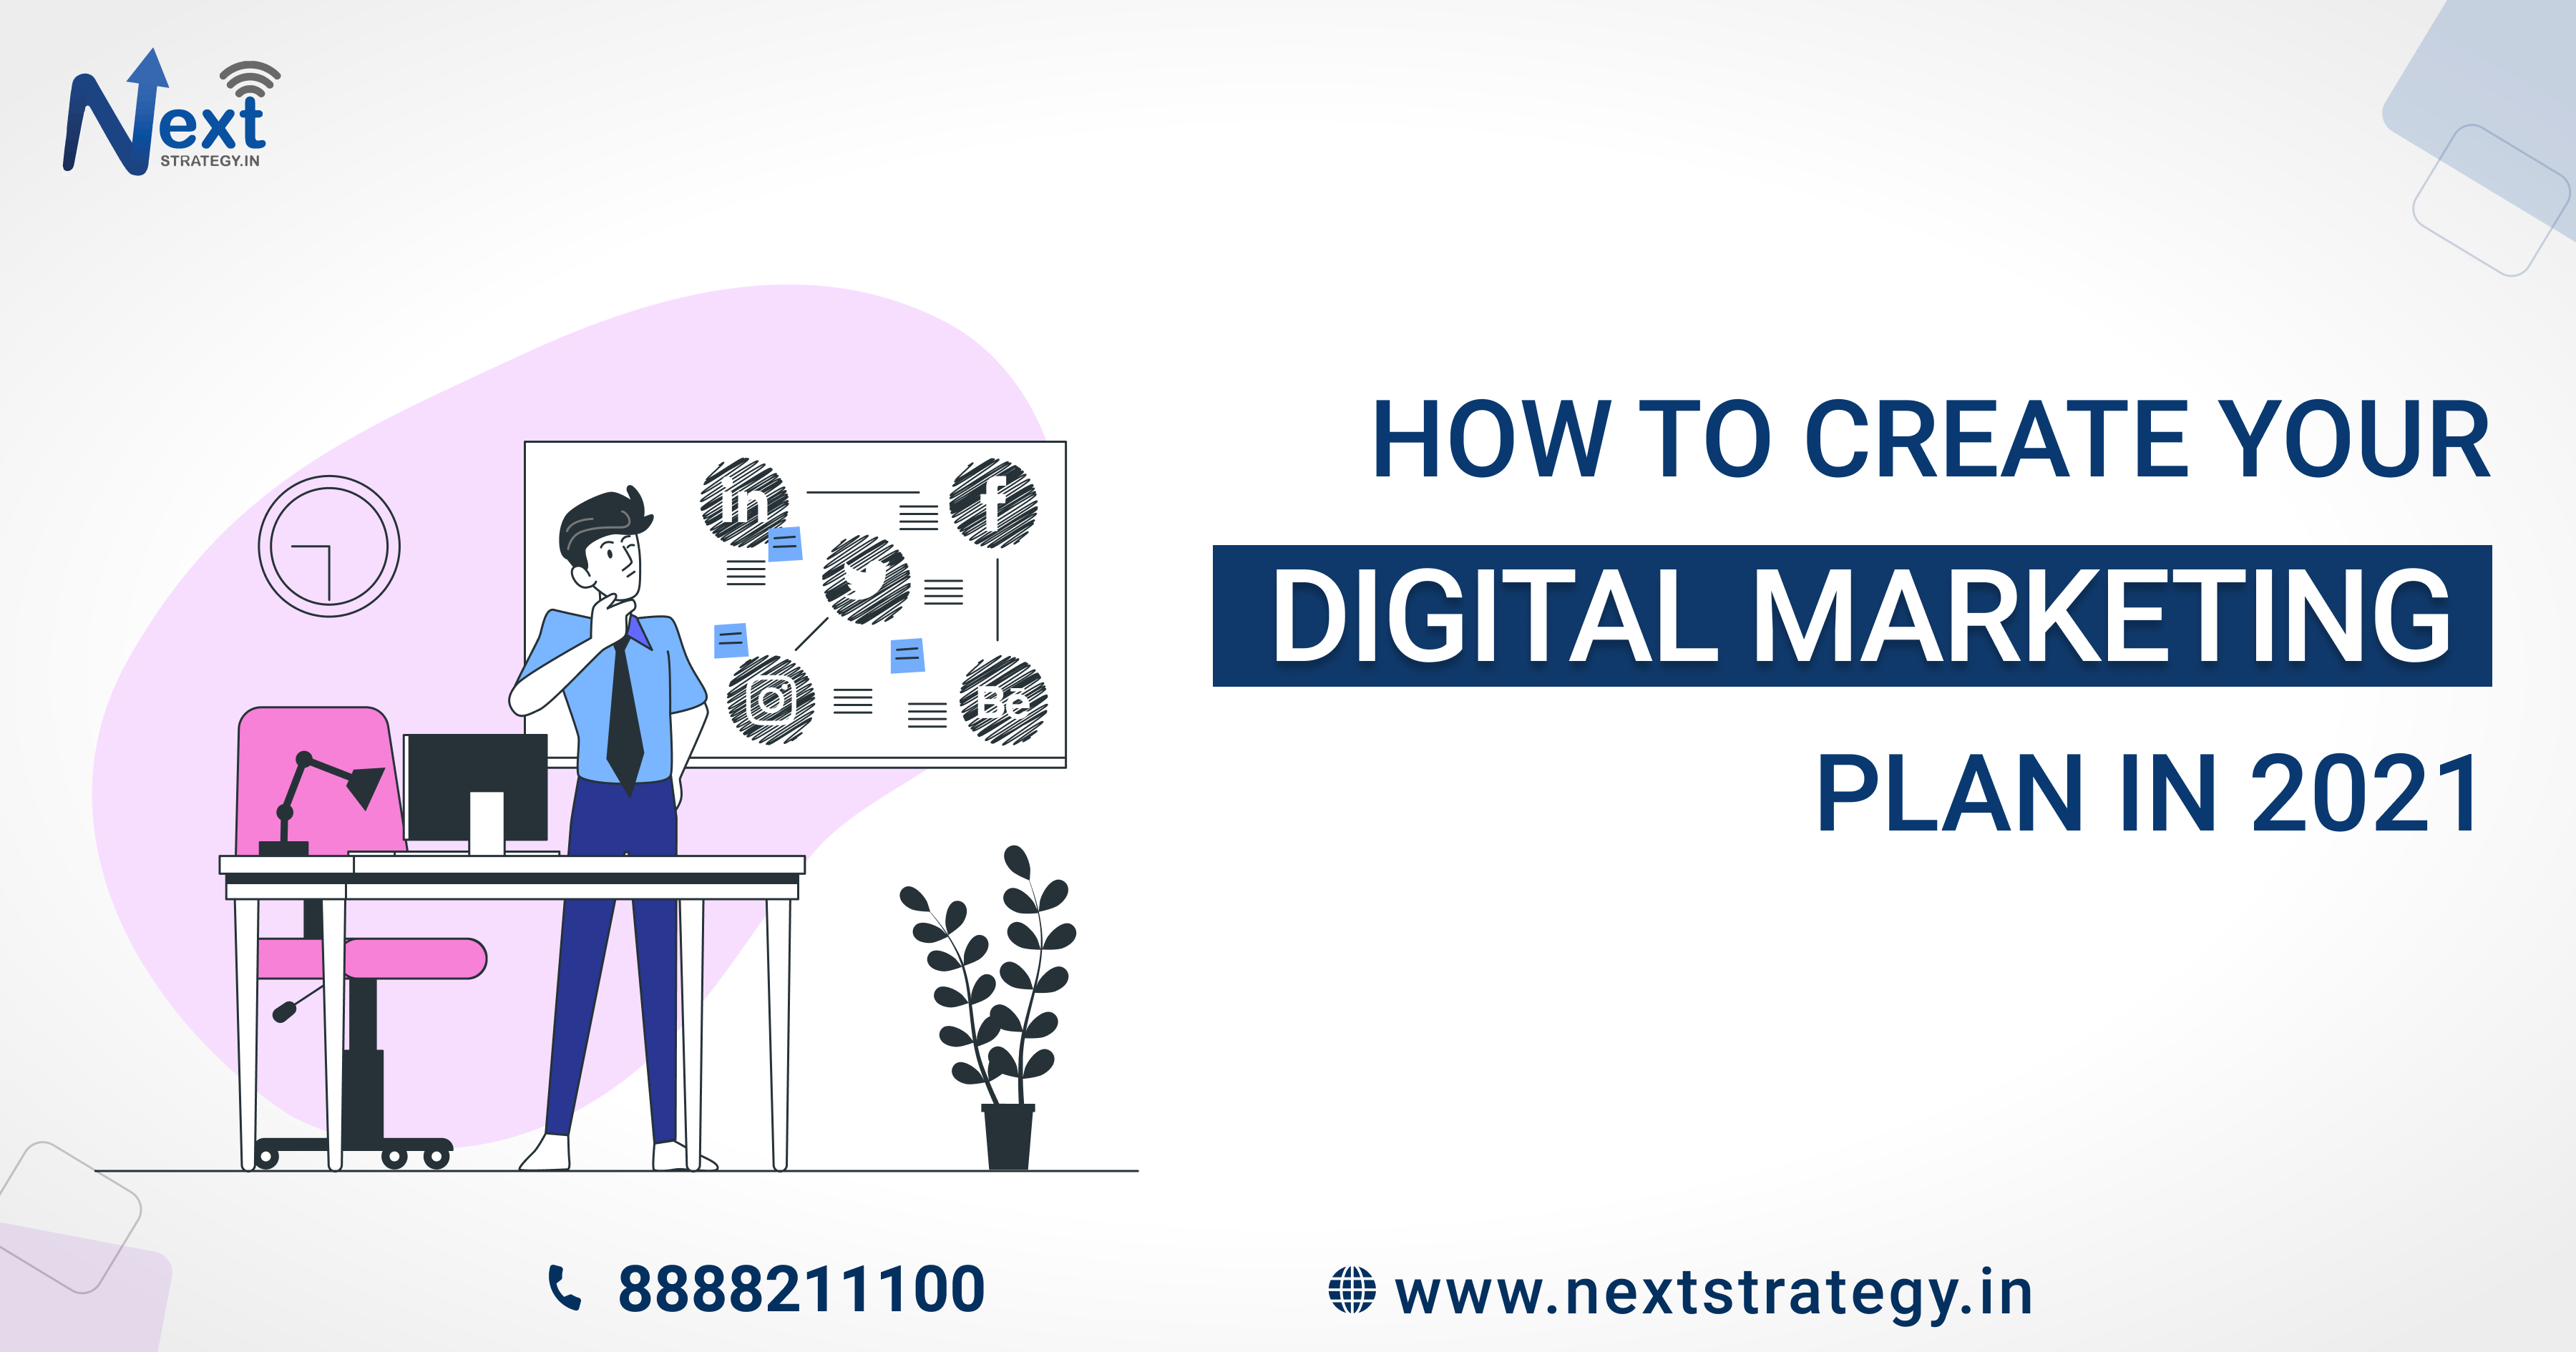 How-to-create-your-digital-marketing-plan-in-2021-NextStrategy.in_